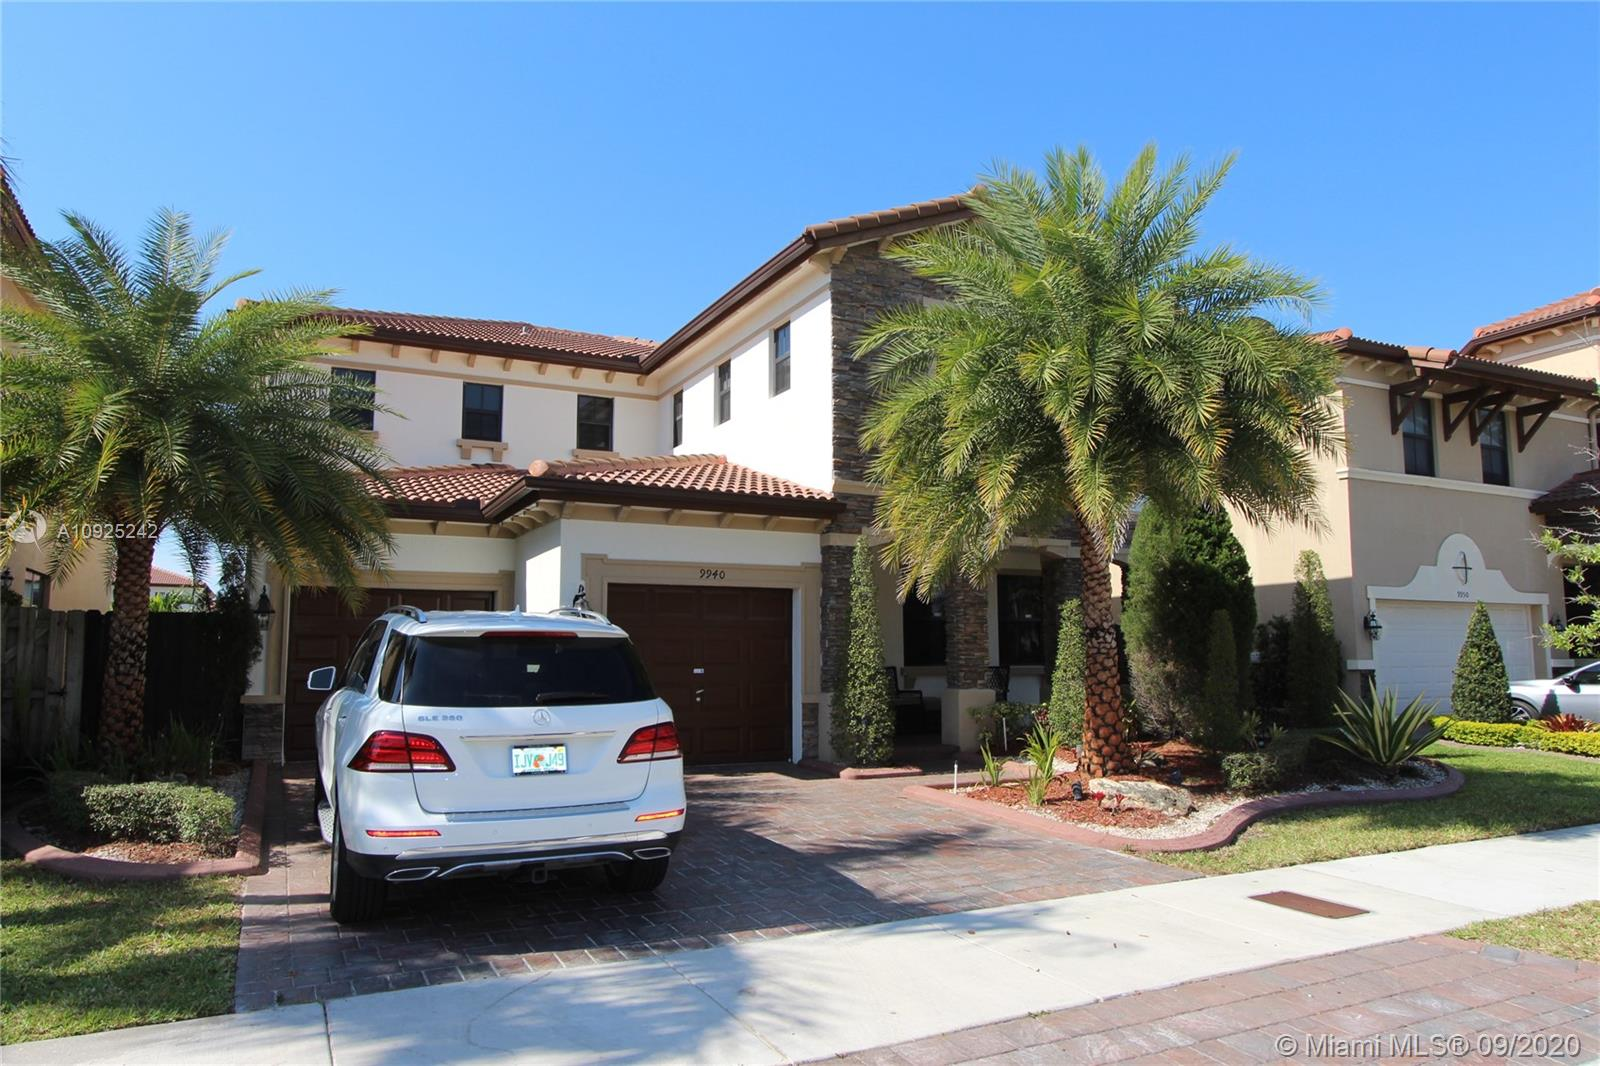 9940 NW 88th Ter #9940 For Sale A10925242, FL